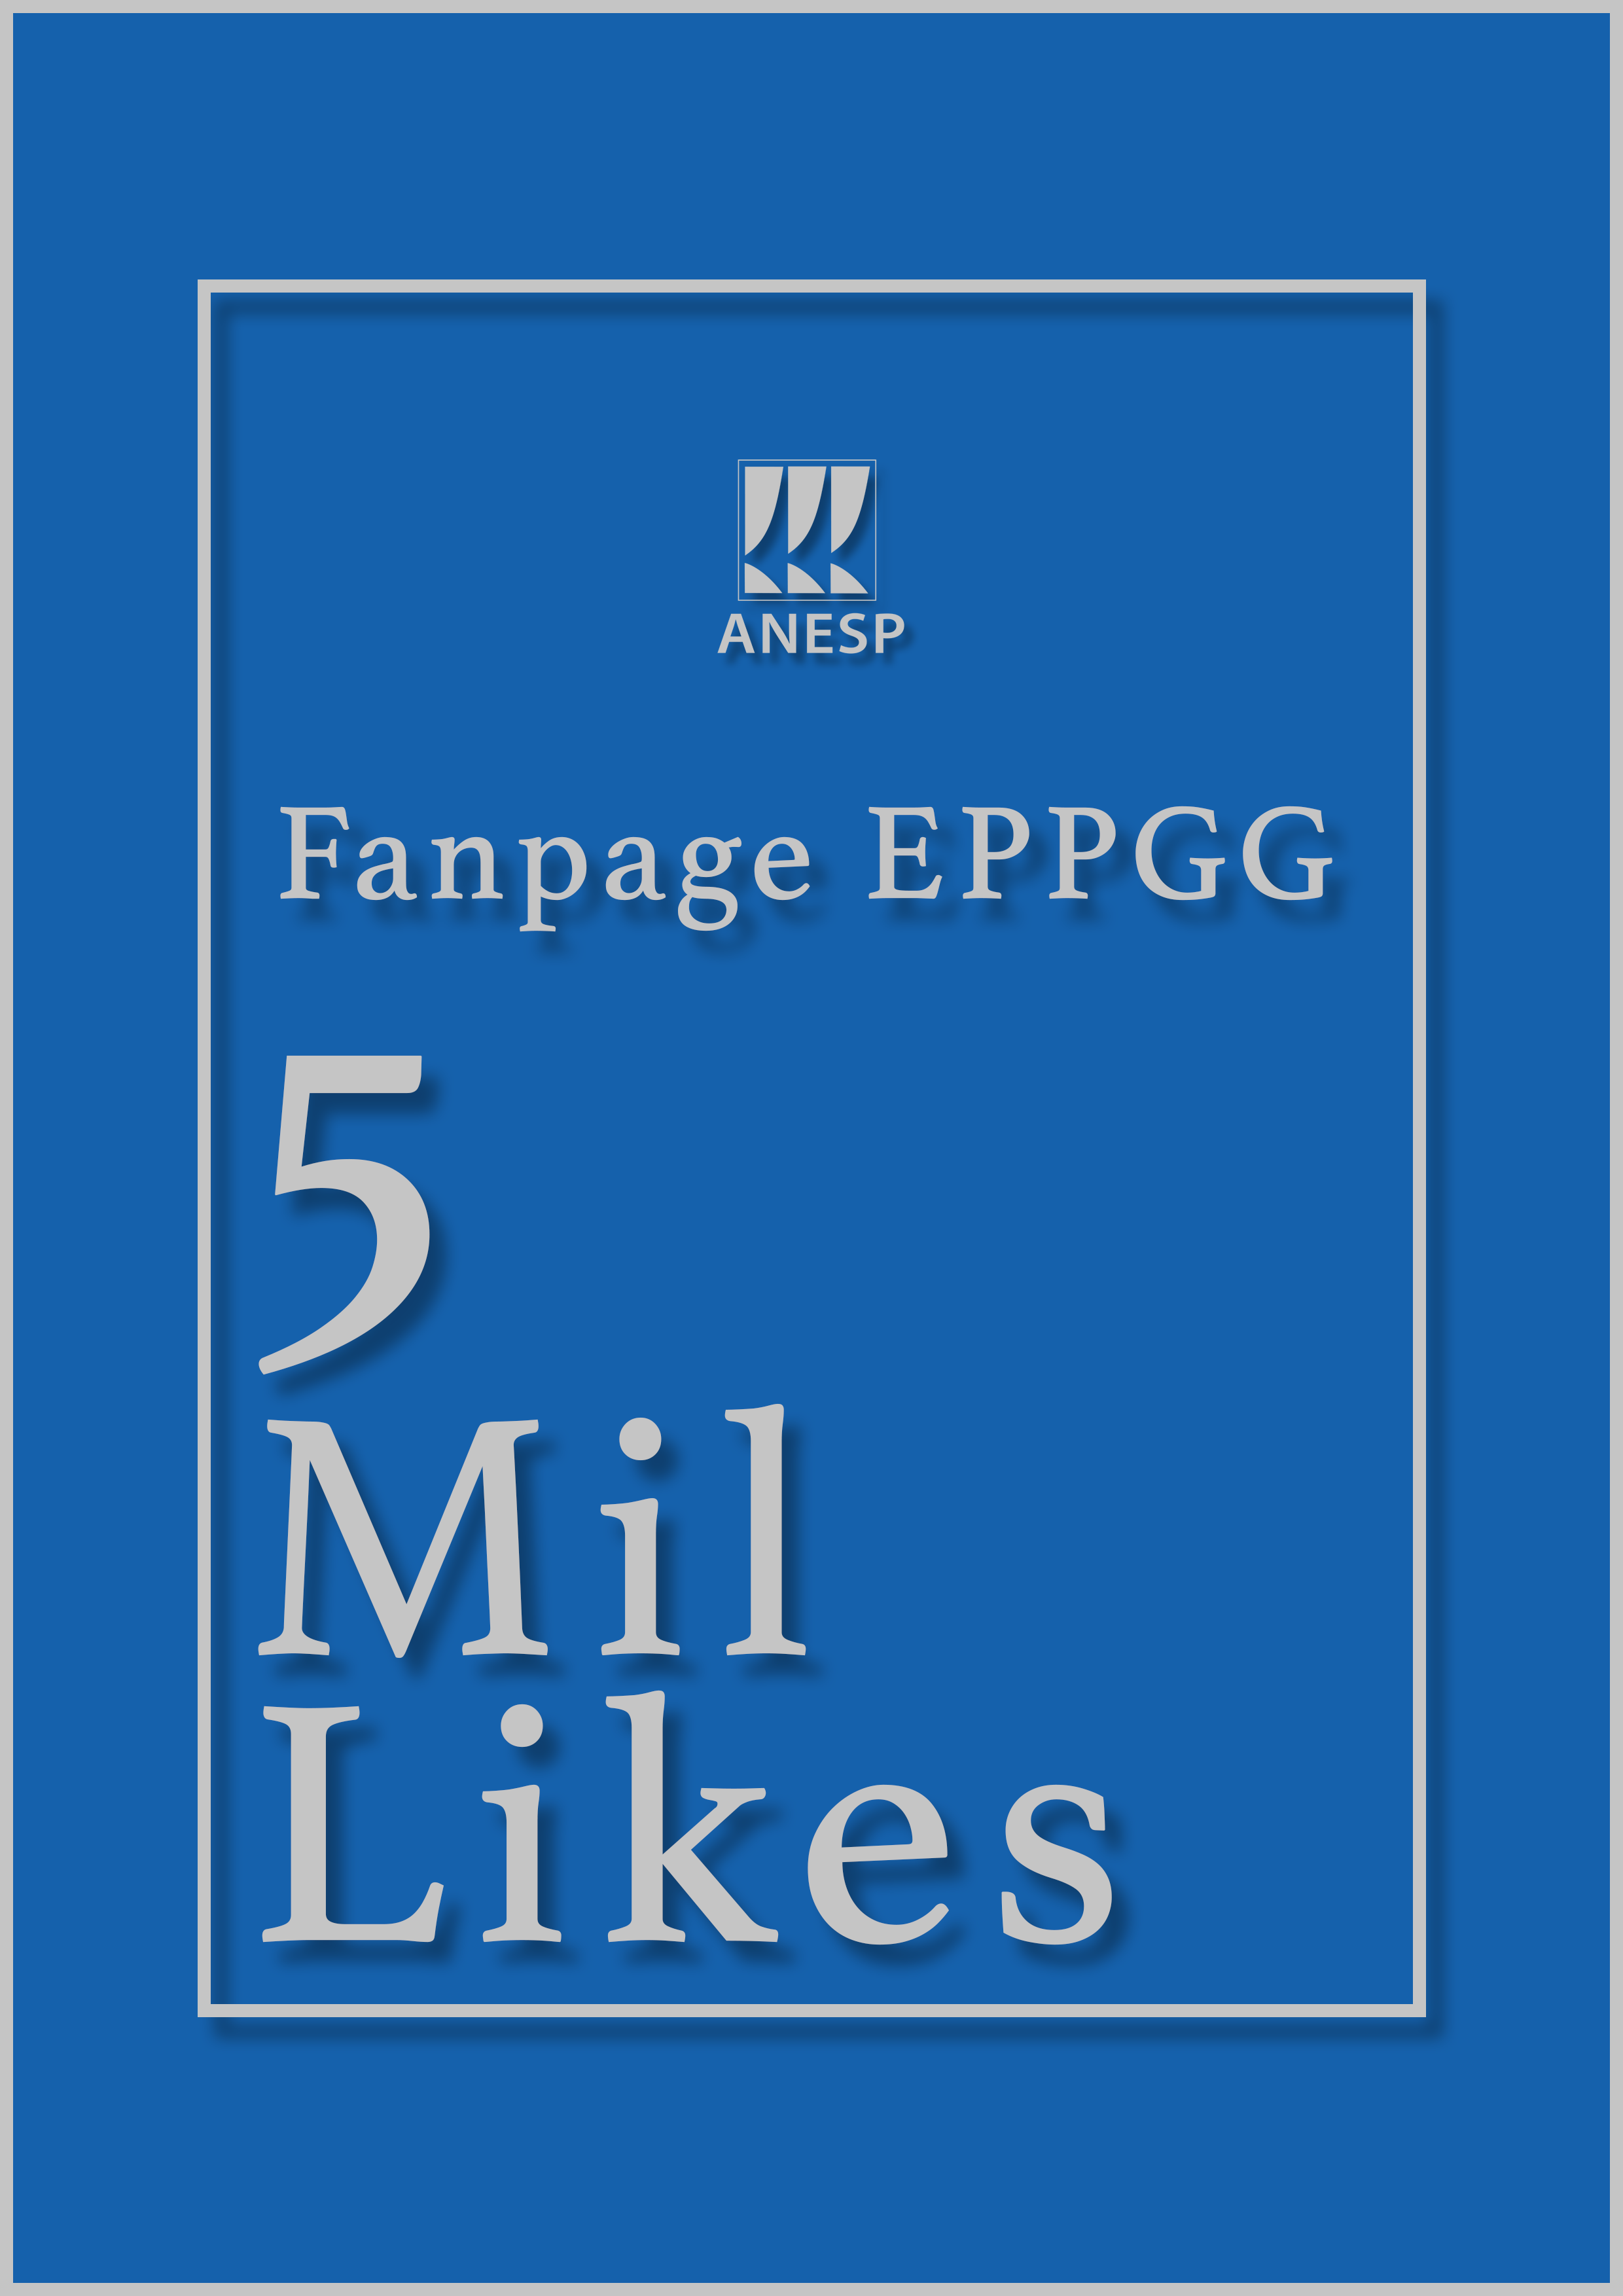 5 mil likes fanpage eppgg.png